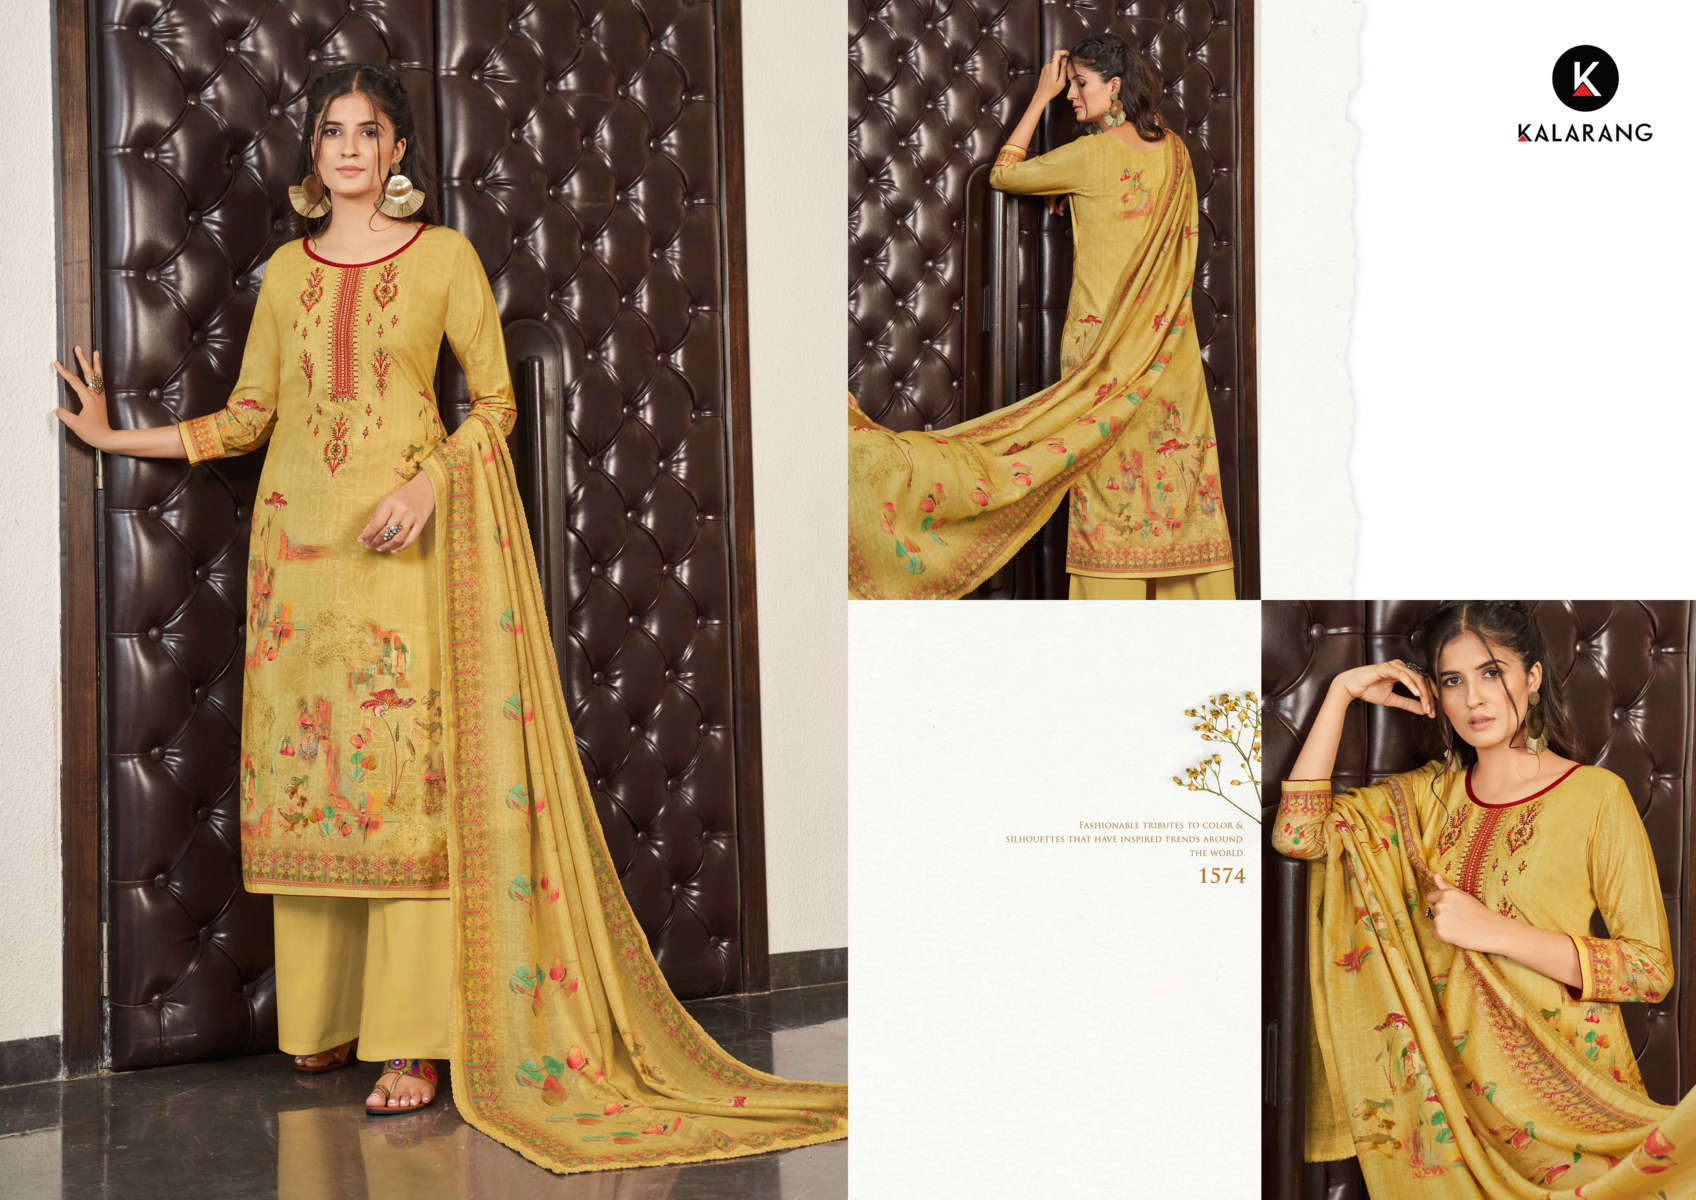 Kalarang Charming Vol 3 by Kessi Salwar Suit Wholesale Catalog 4 Pcs 6 - Kalarang Charming Vol 3 by Kessi Salwar Suit Wholesale Catalog 4 Pcs